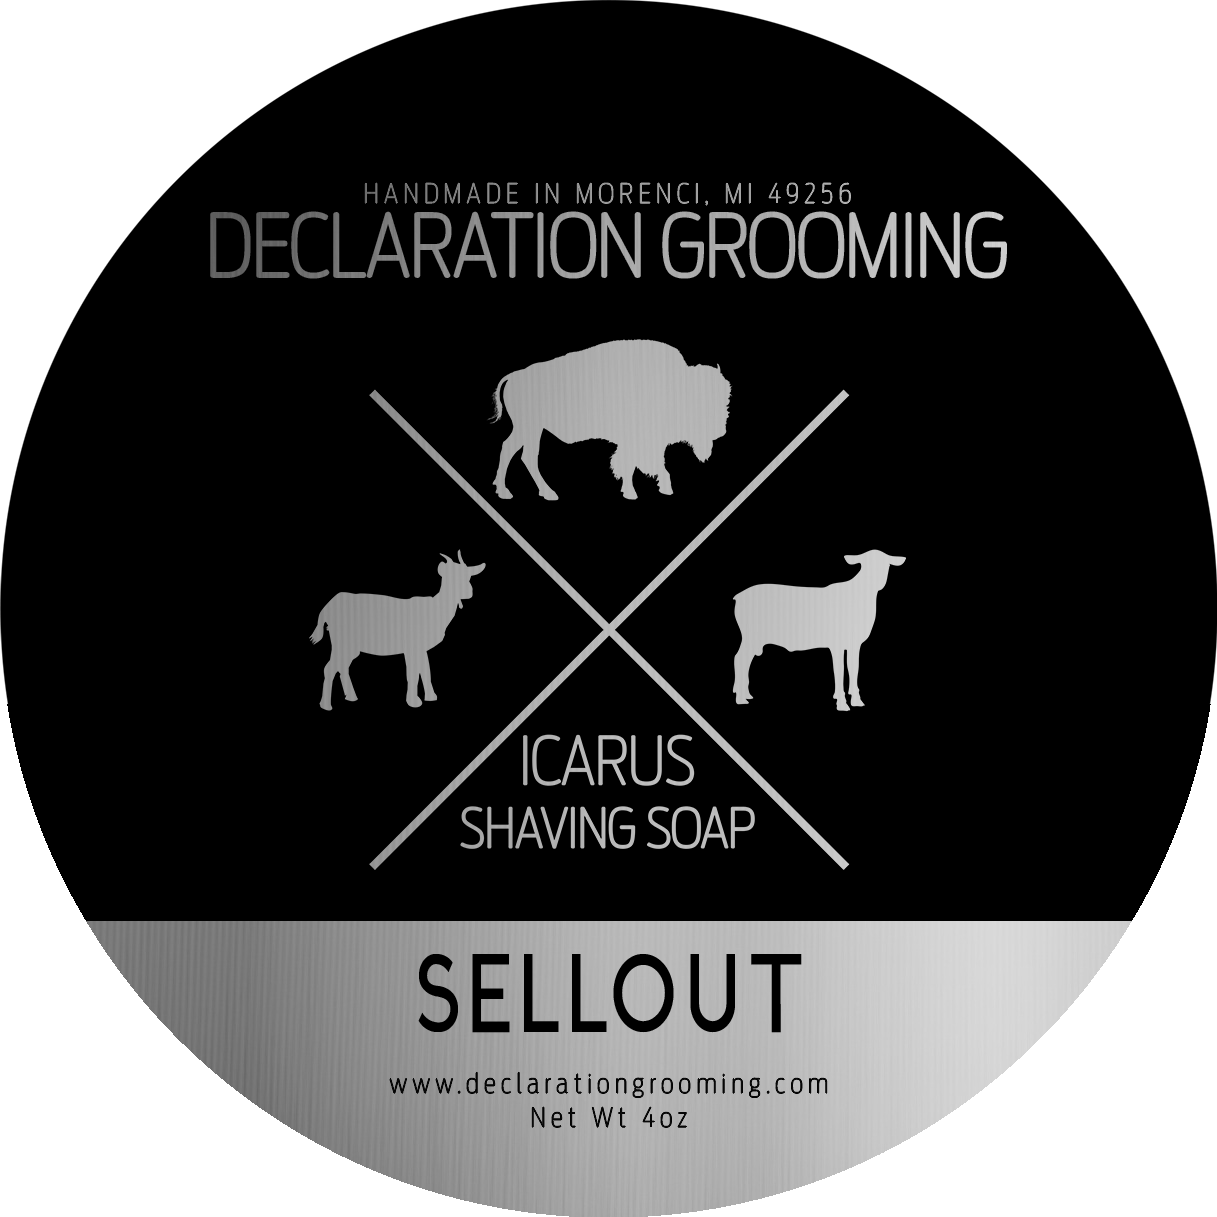 Declaration Grooming - Declaration Grooming - Sellout - Soap image